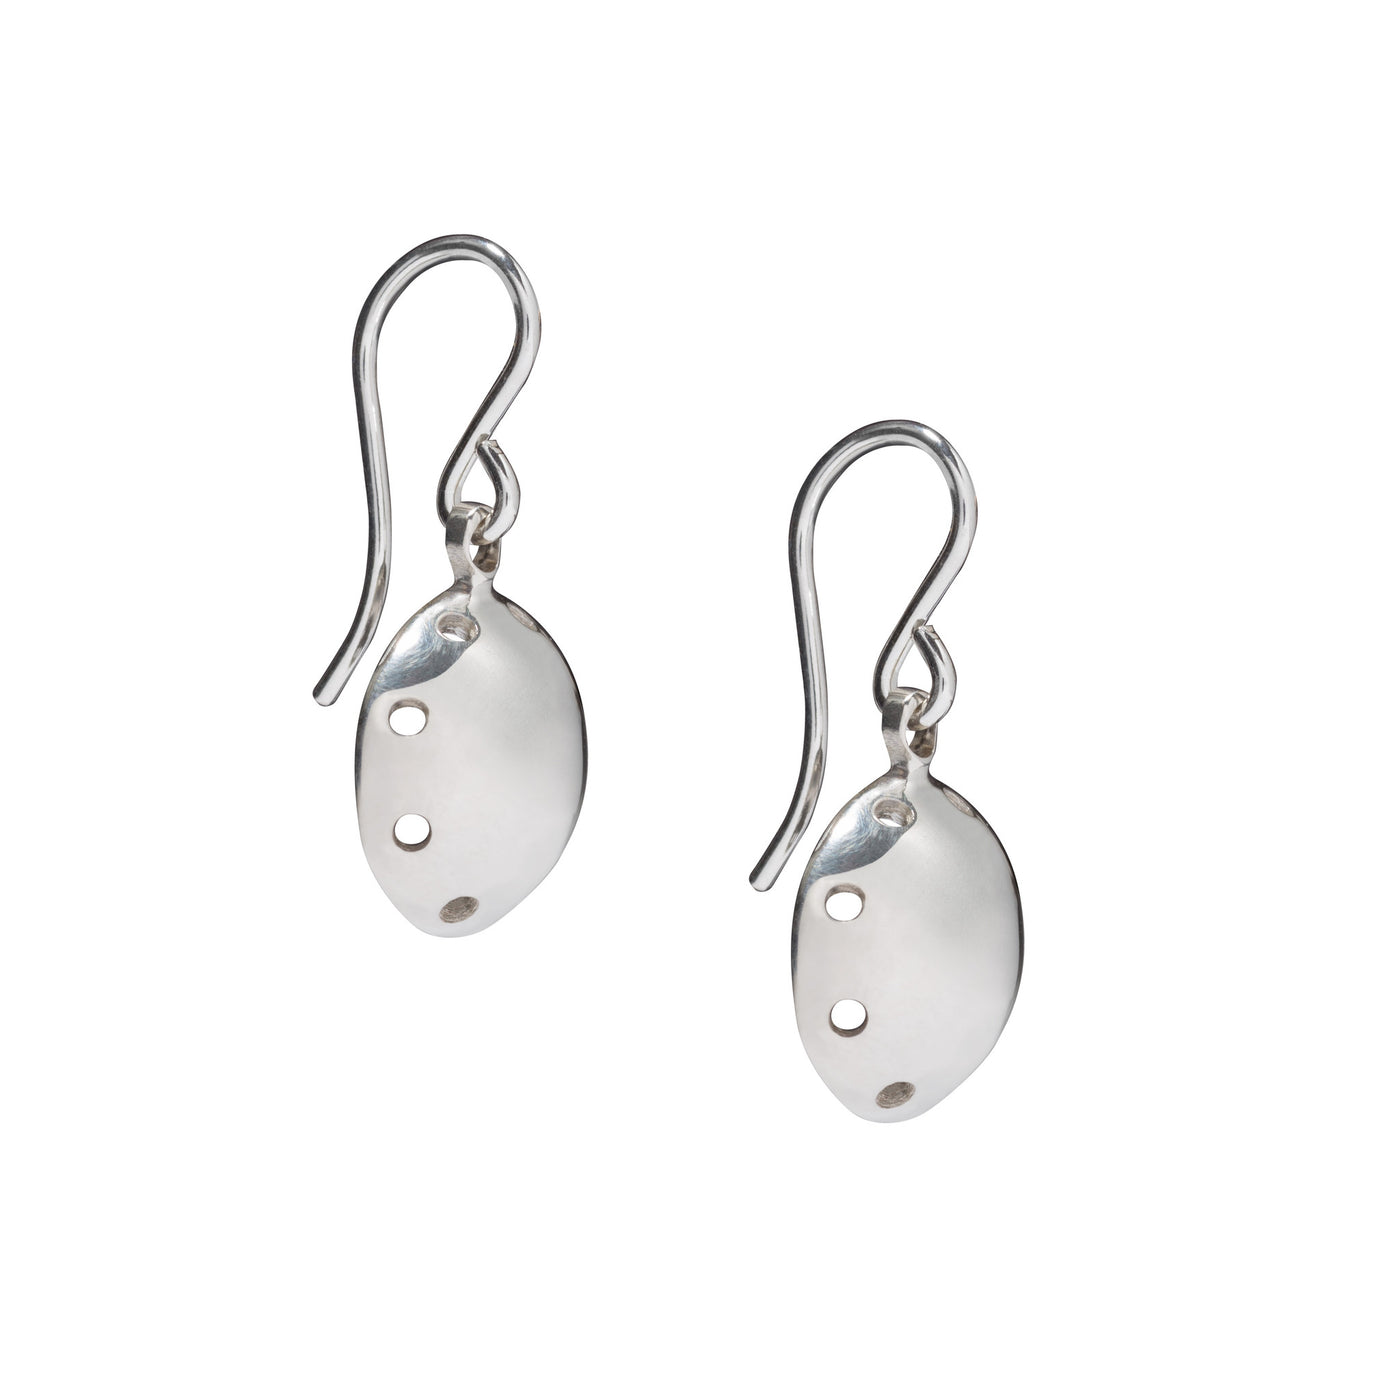 Circular Silver Swing Earrings. Unique designer jewellery handcrafted in Ireland.